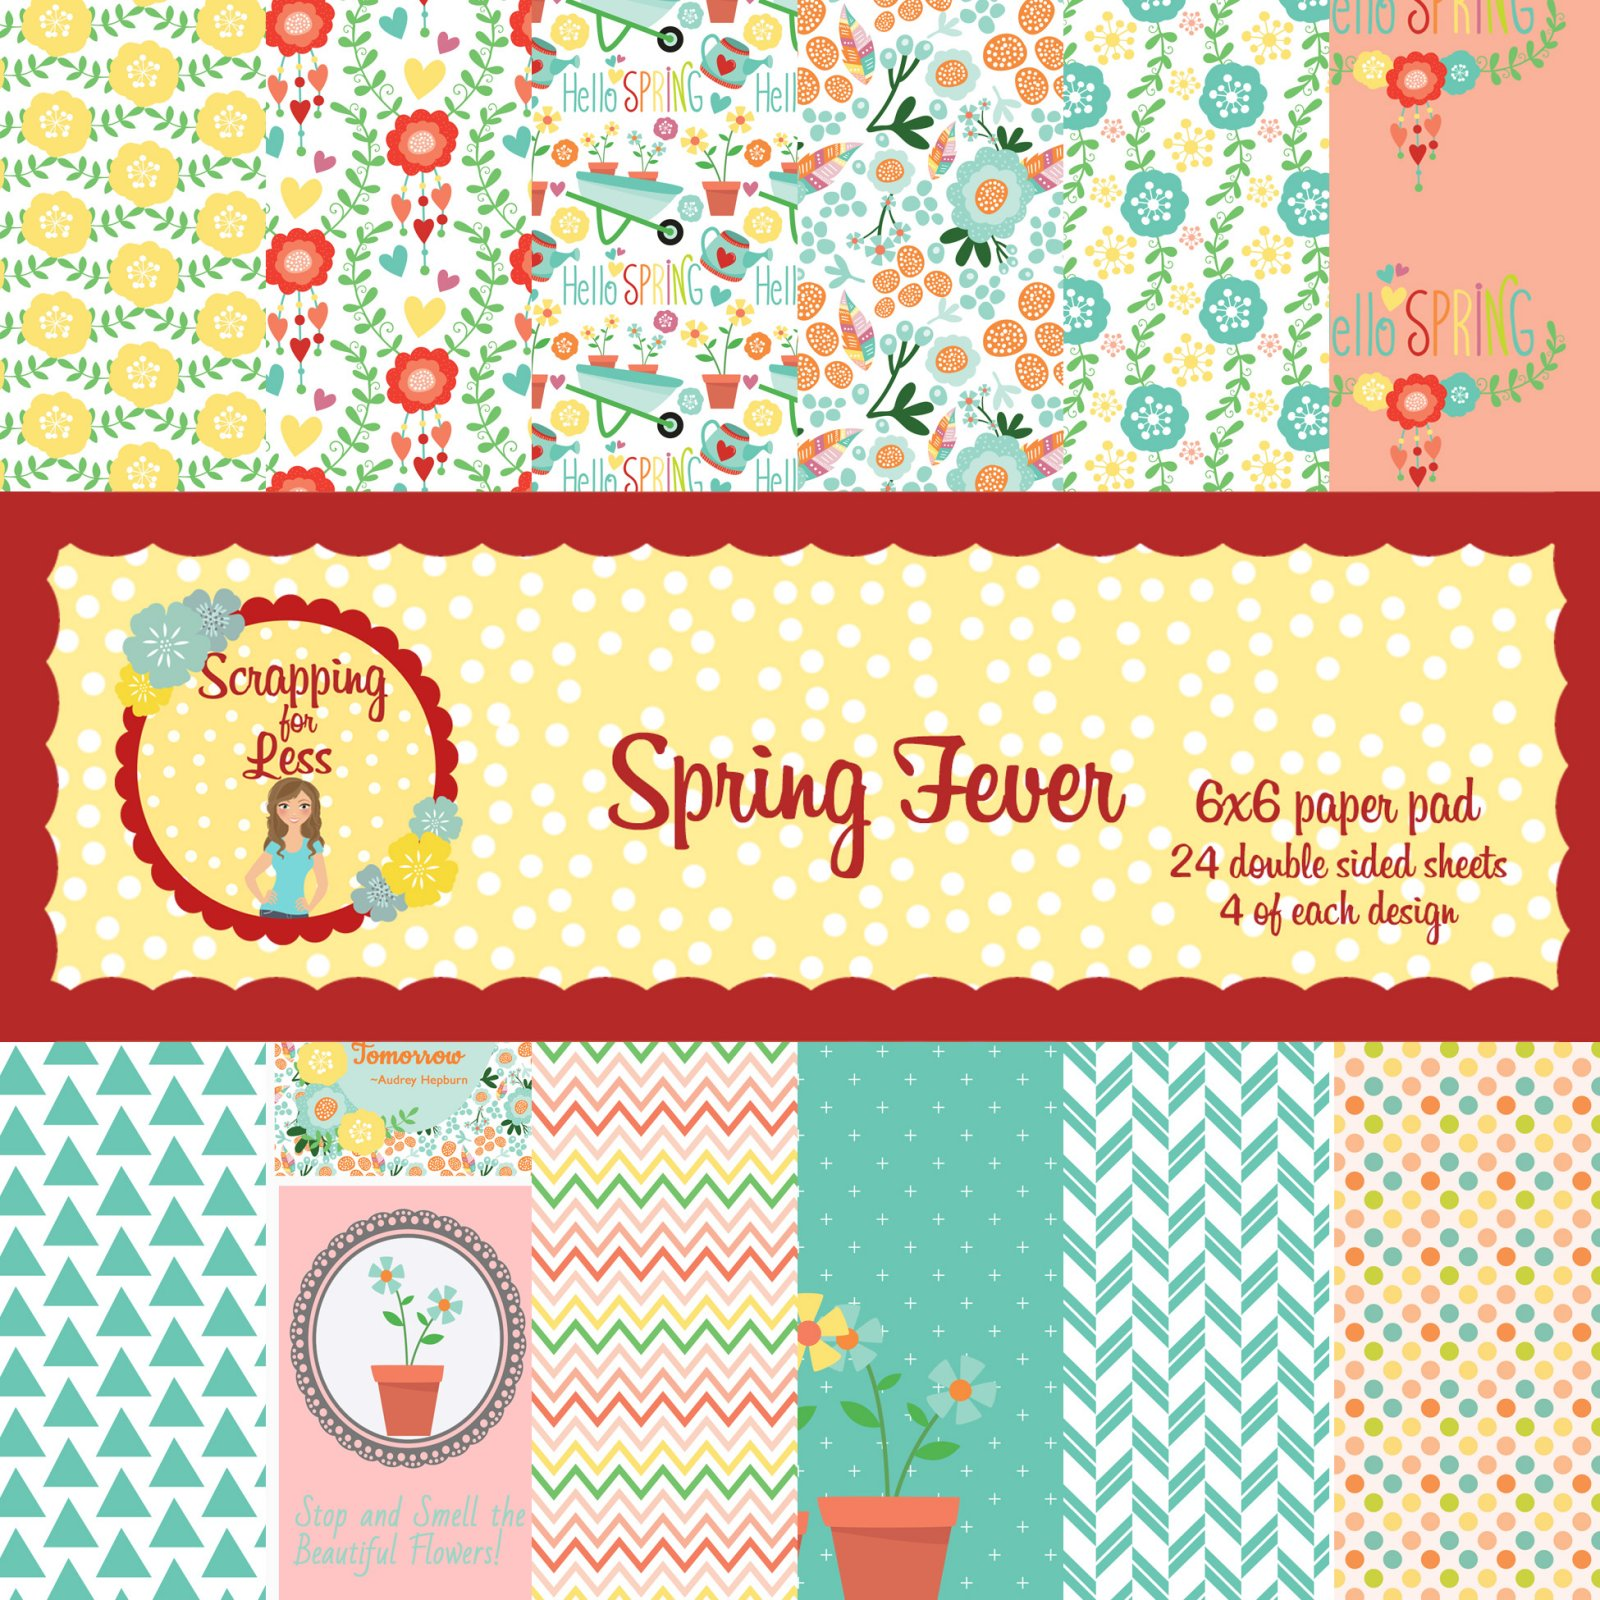 Scrapping for Less Spring Fever 6x6 Paper Pad